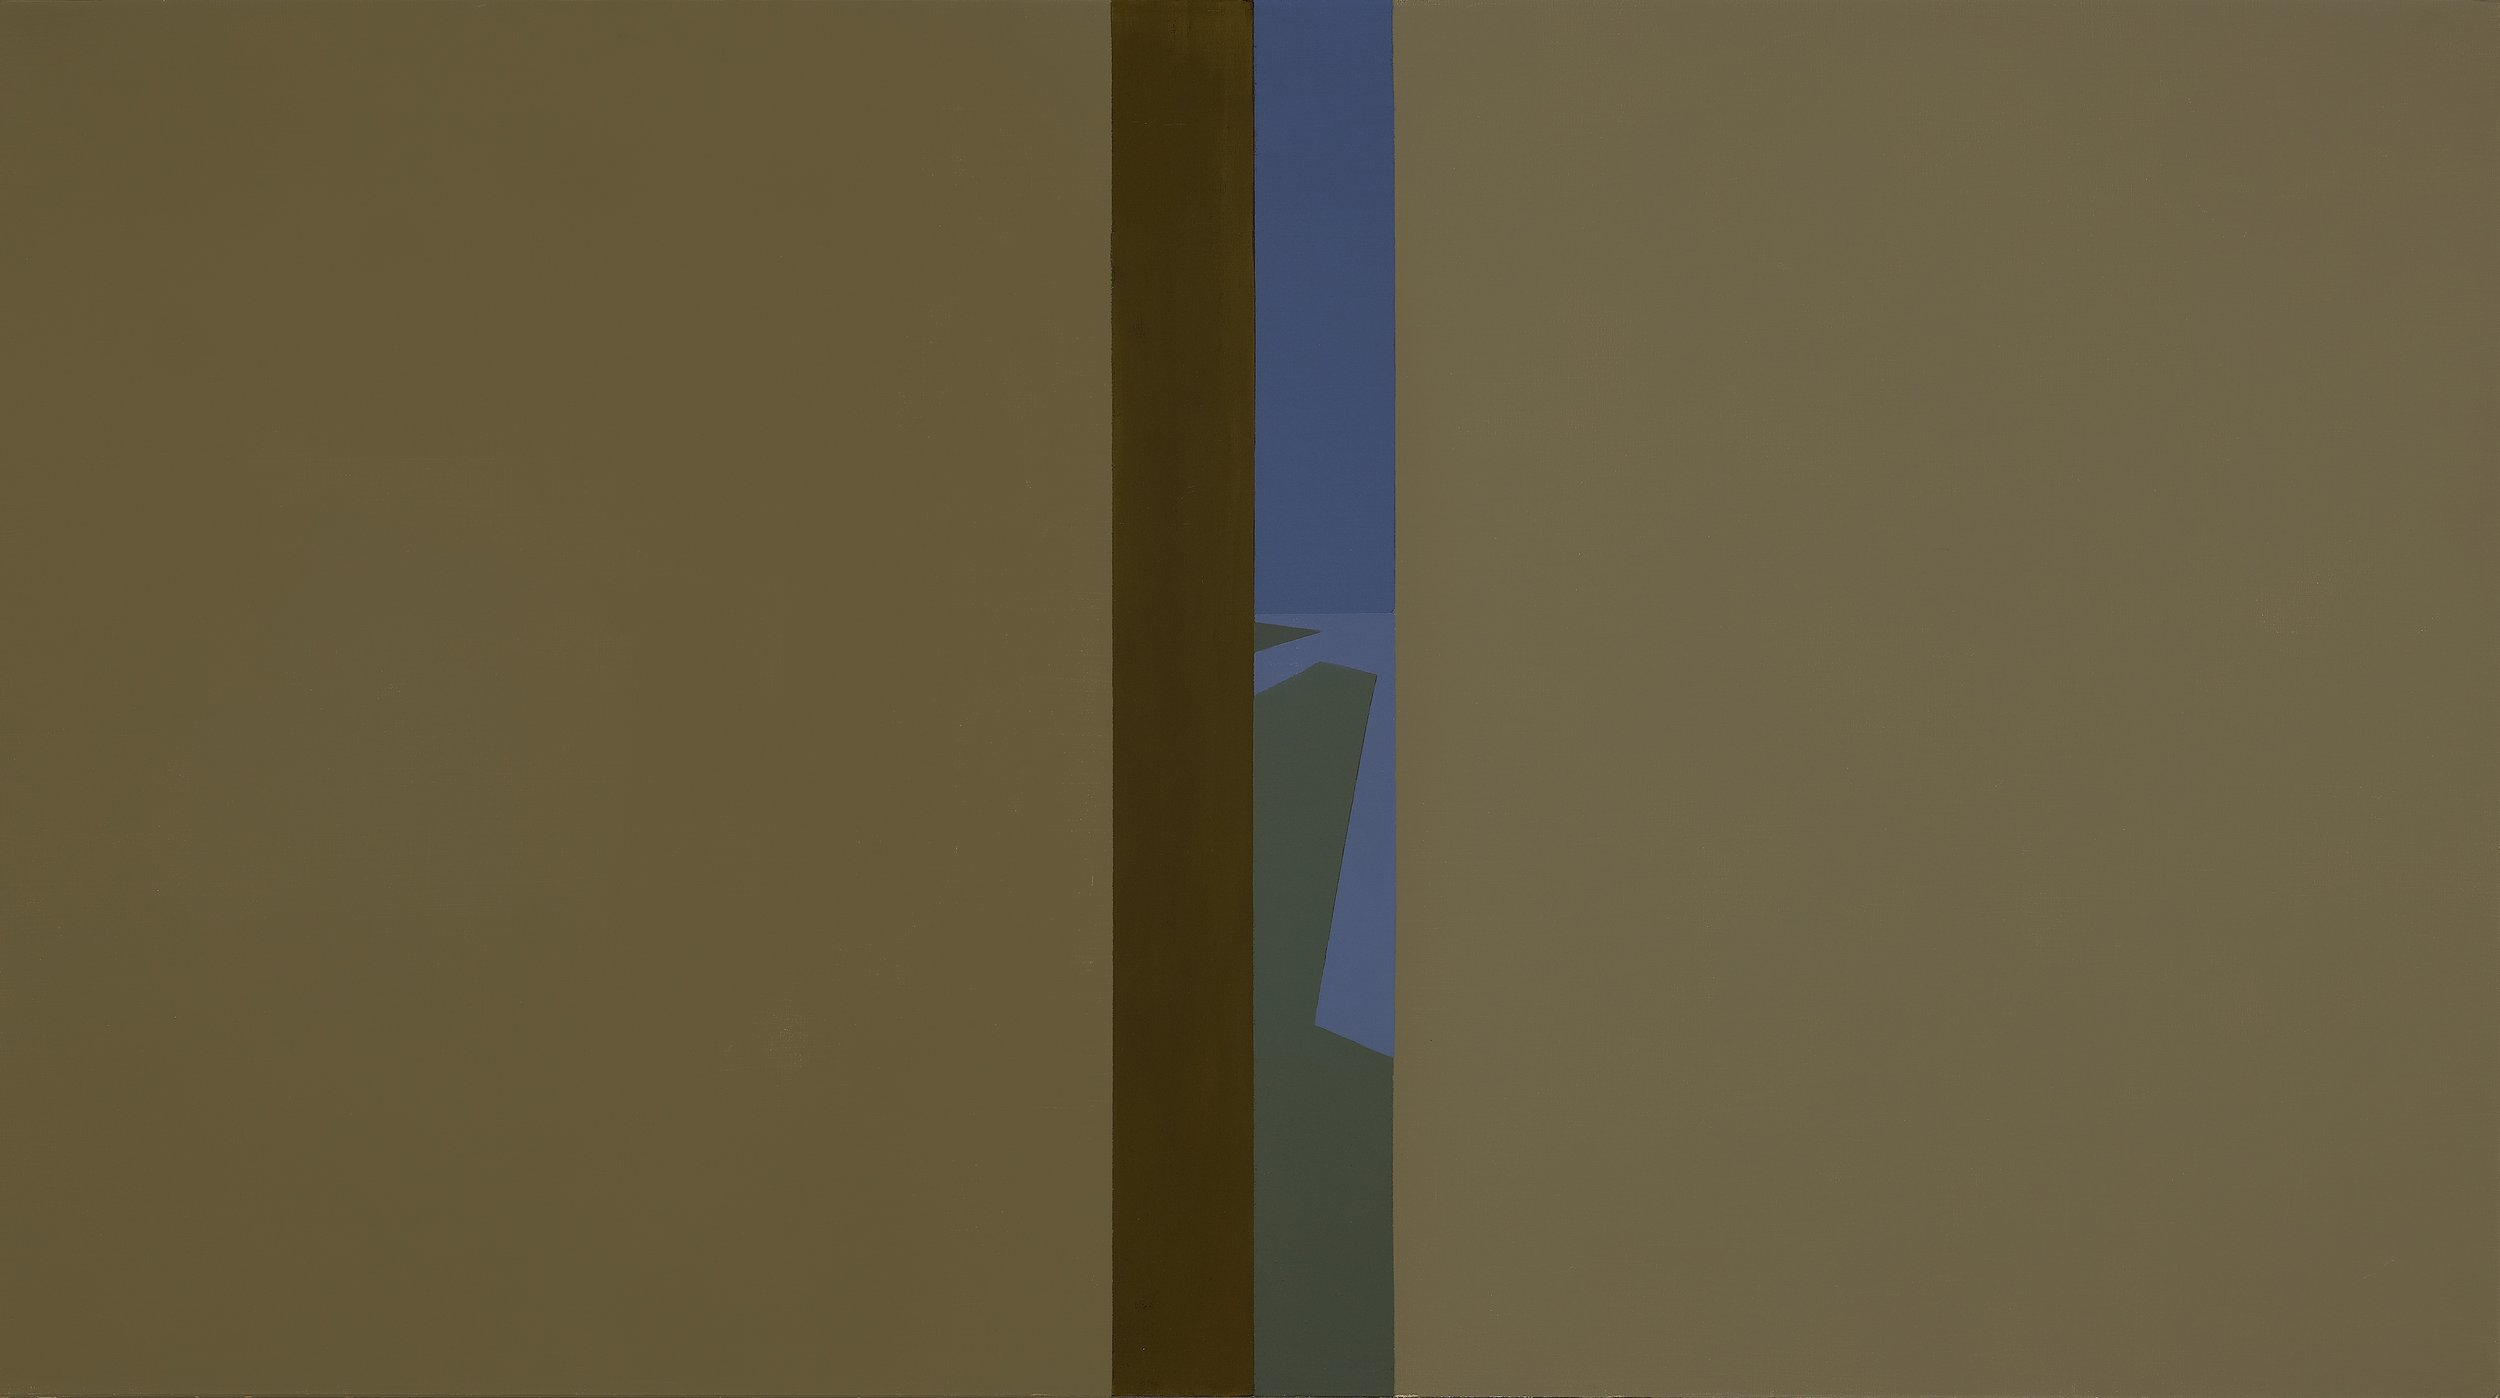 Narrow View , 1961  oil on canvas 30 x 54 inches; 76.2 x 137.2 centimeters  $60,000